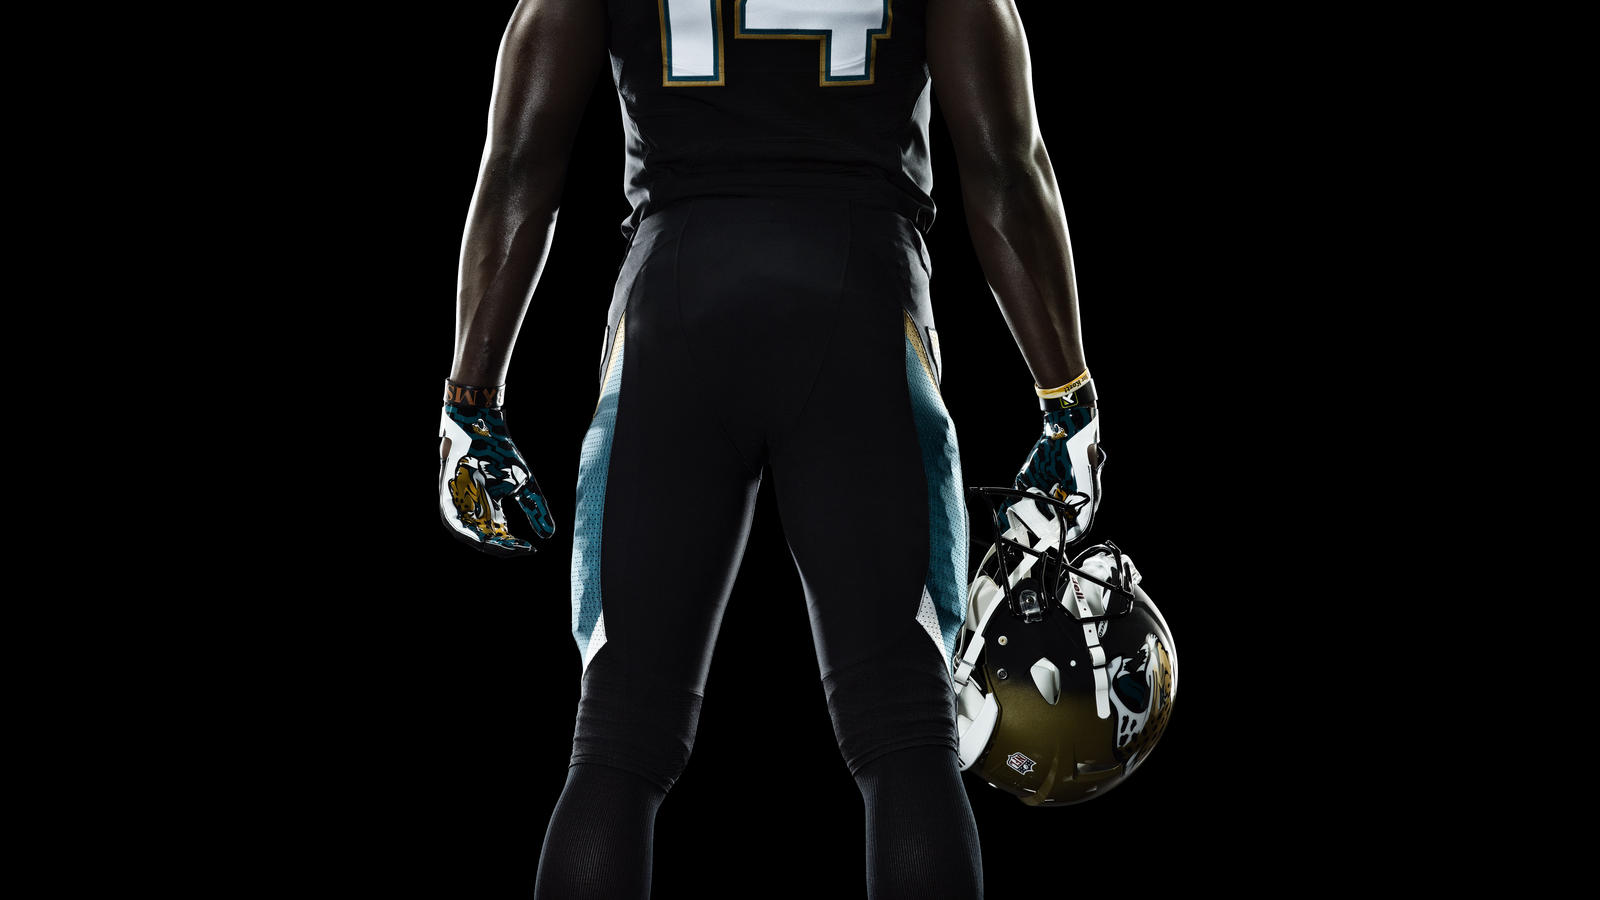 jaguars-blackmon-nfl-nike-elite-51-uniform-full-body-back